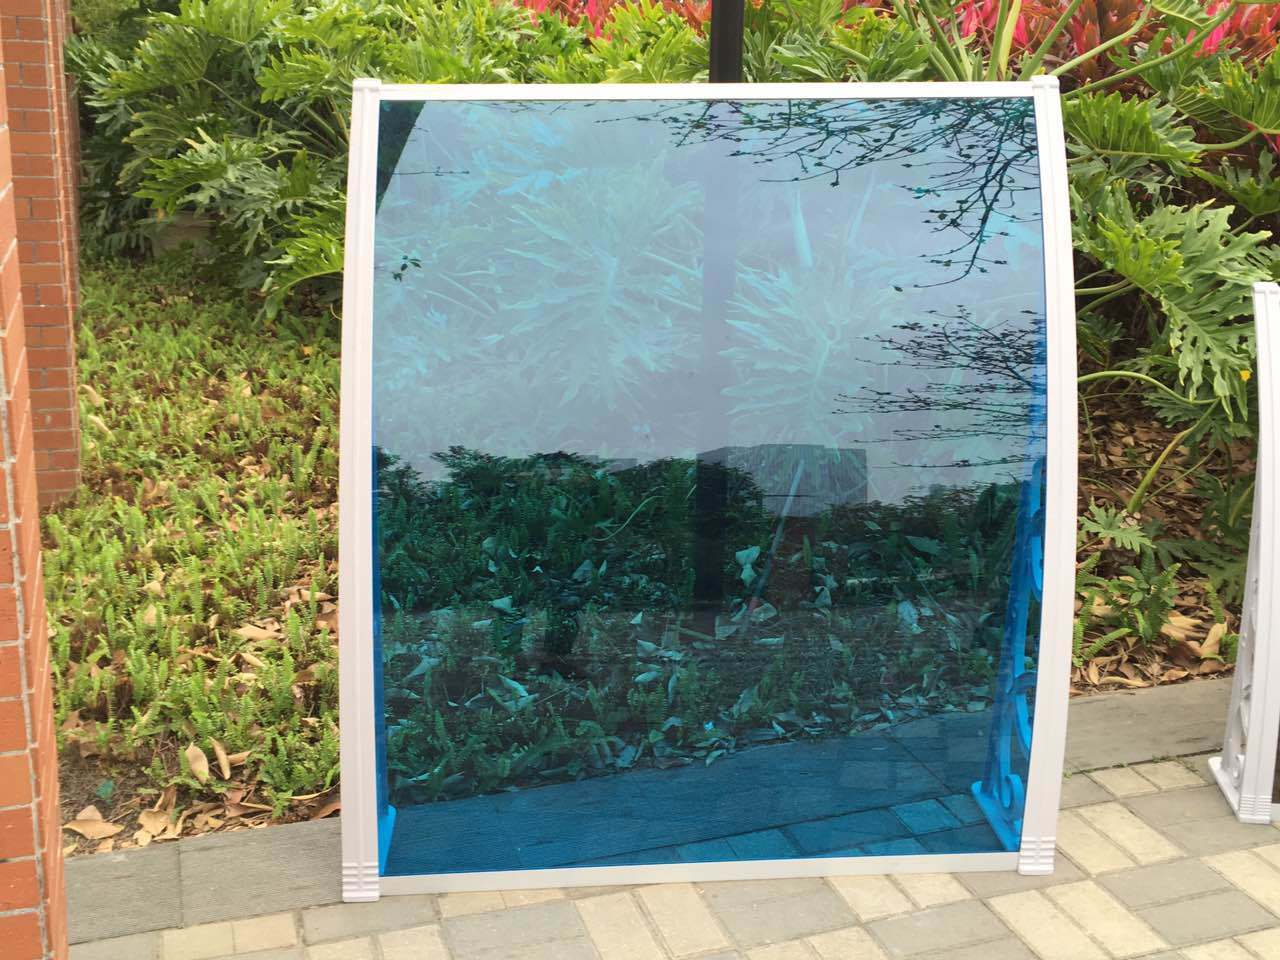 Cheap 2.7mm Soild PC Polycarbonate Rain Cover Awning (B-1000) pictures & photos